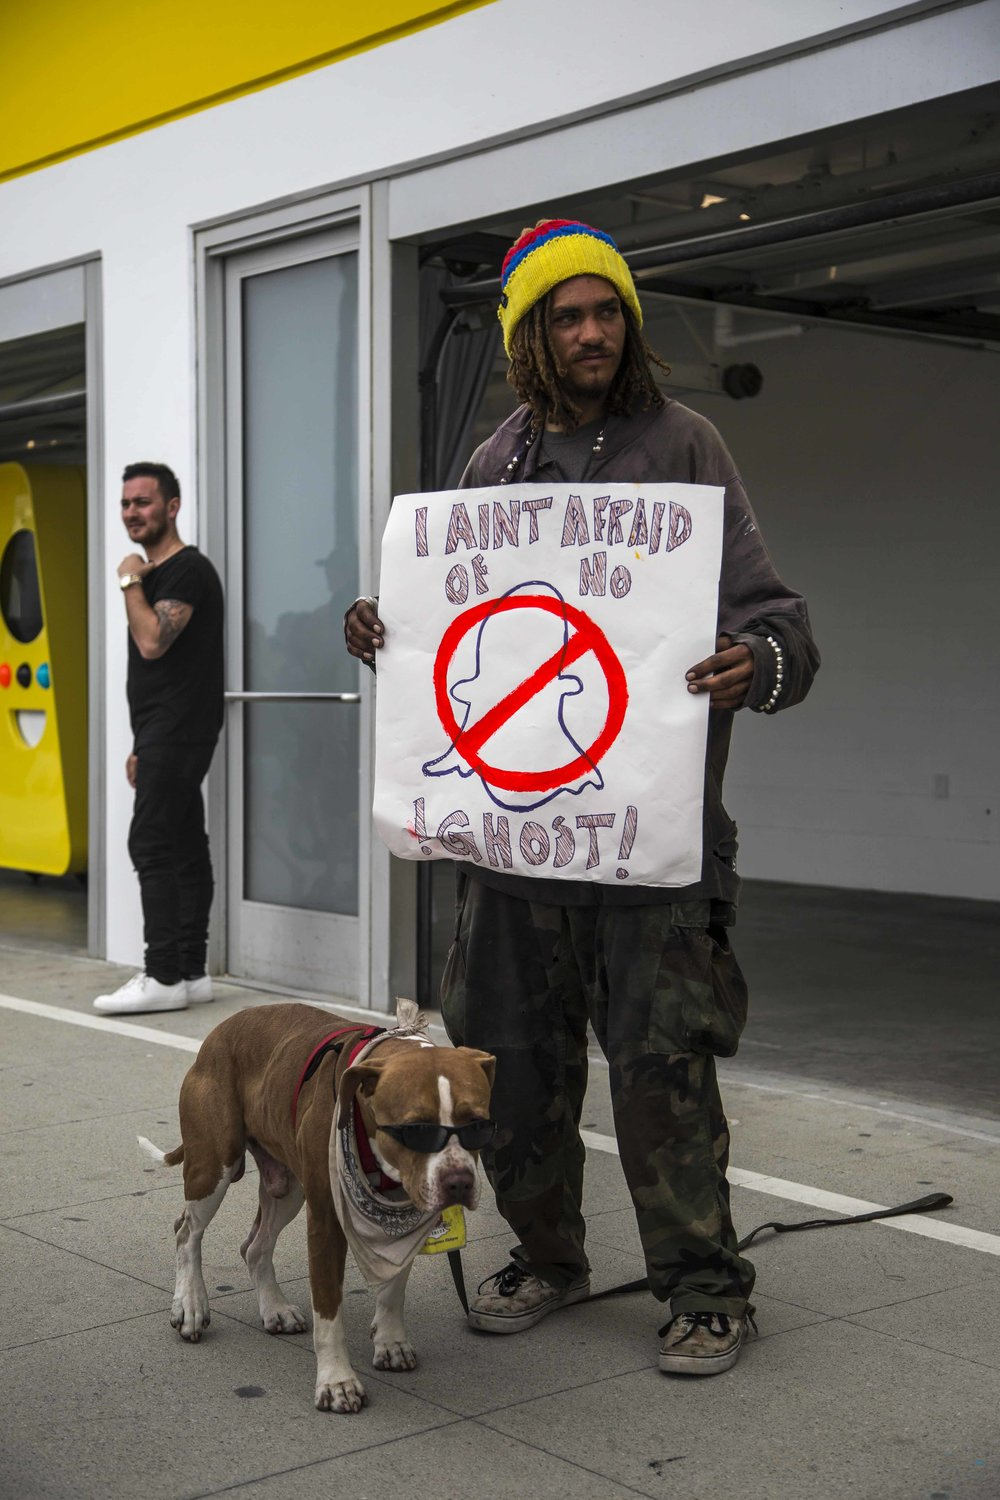 "Local Venice artist and activist Josiah Renn protests Snapchats newly opened storefront named Spectacles holding a sign which reads, ""I aint afraid of no ghost"" at 701 Ocean Front Walk, Venice, Calif., on Saturday March 11 2017.  Renn argues that Snapchats presence is the culprit for rising rents and the takeover of local cafes and other properties by Snap. ""This is one of the few remaining artist communities left and I will fight to save it from this hostile takeover."" (Corsair Photo: Matthew Martin)"